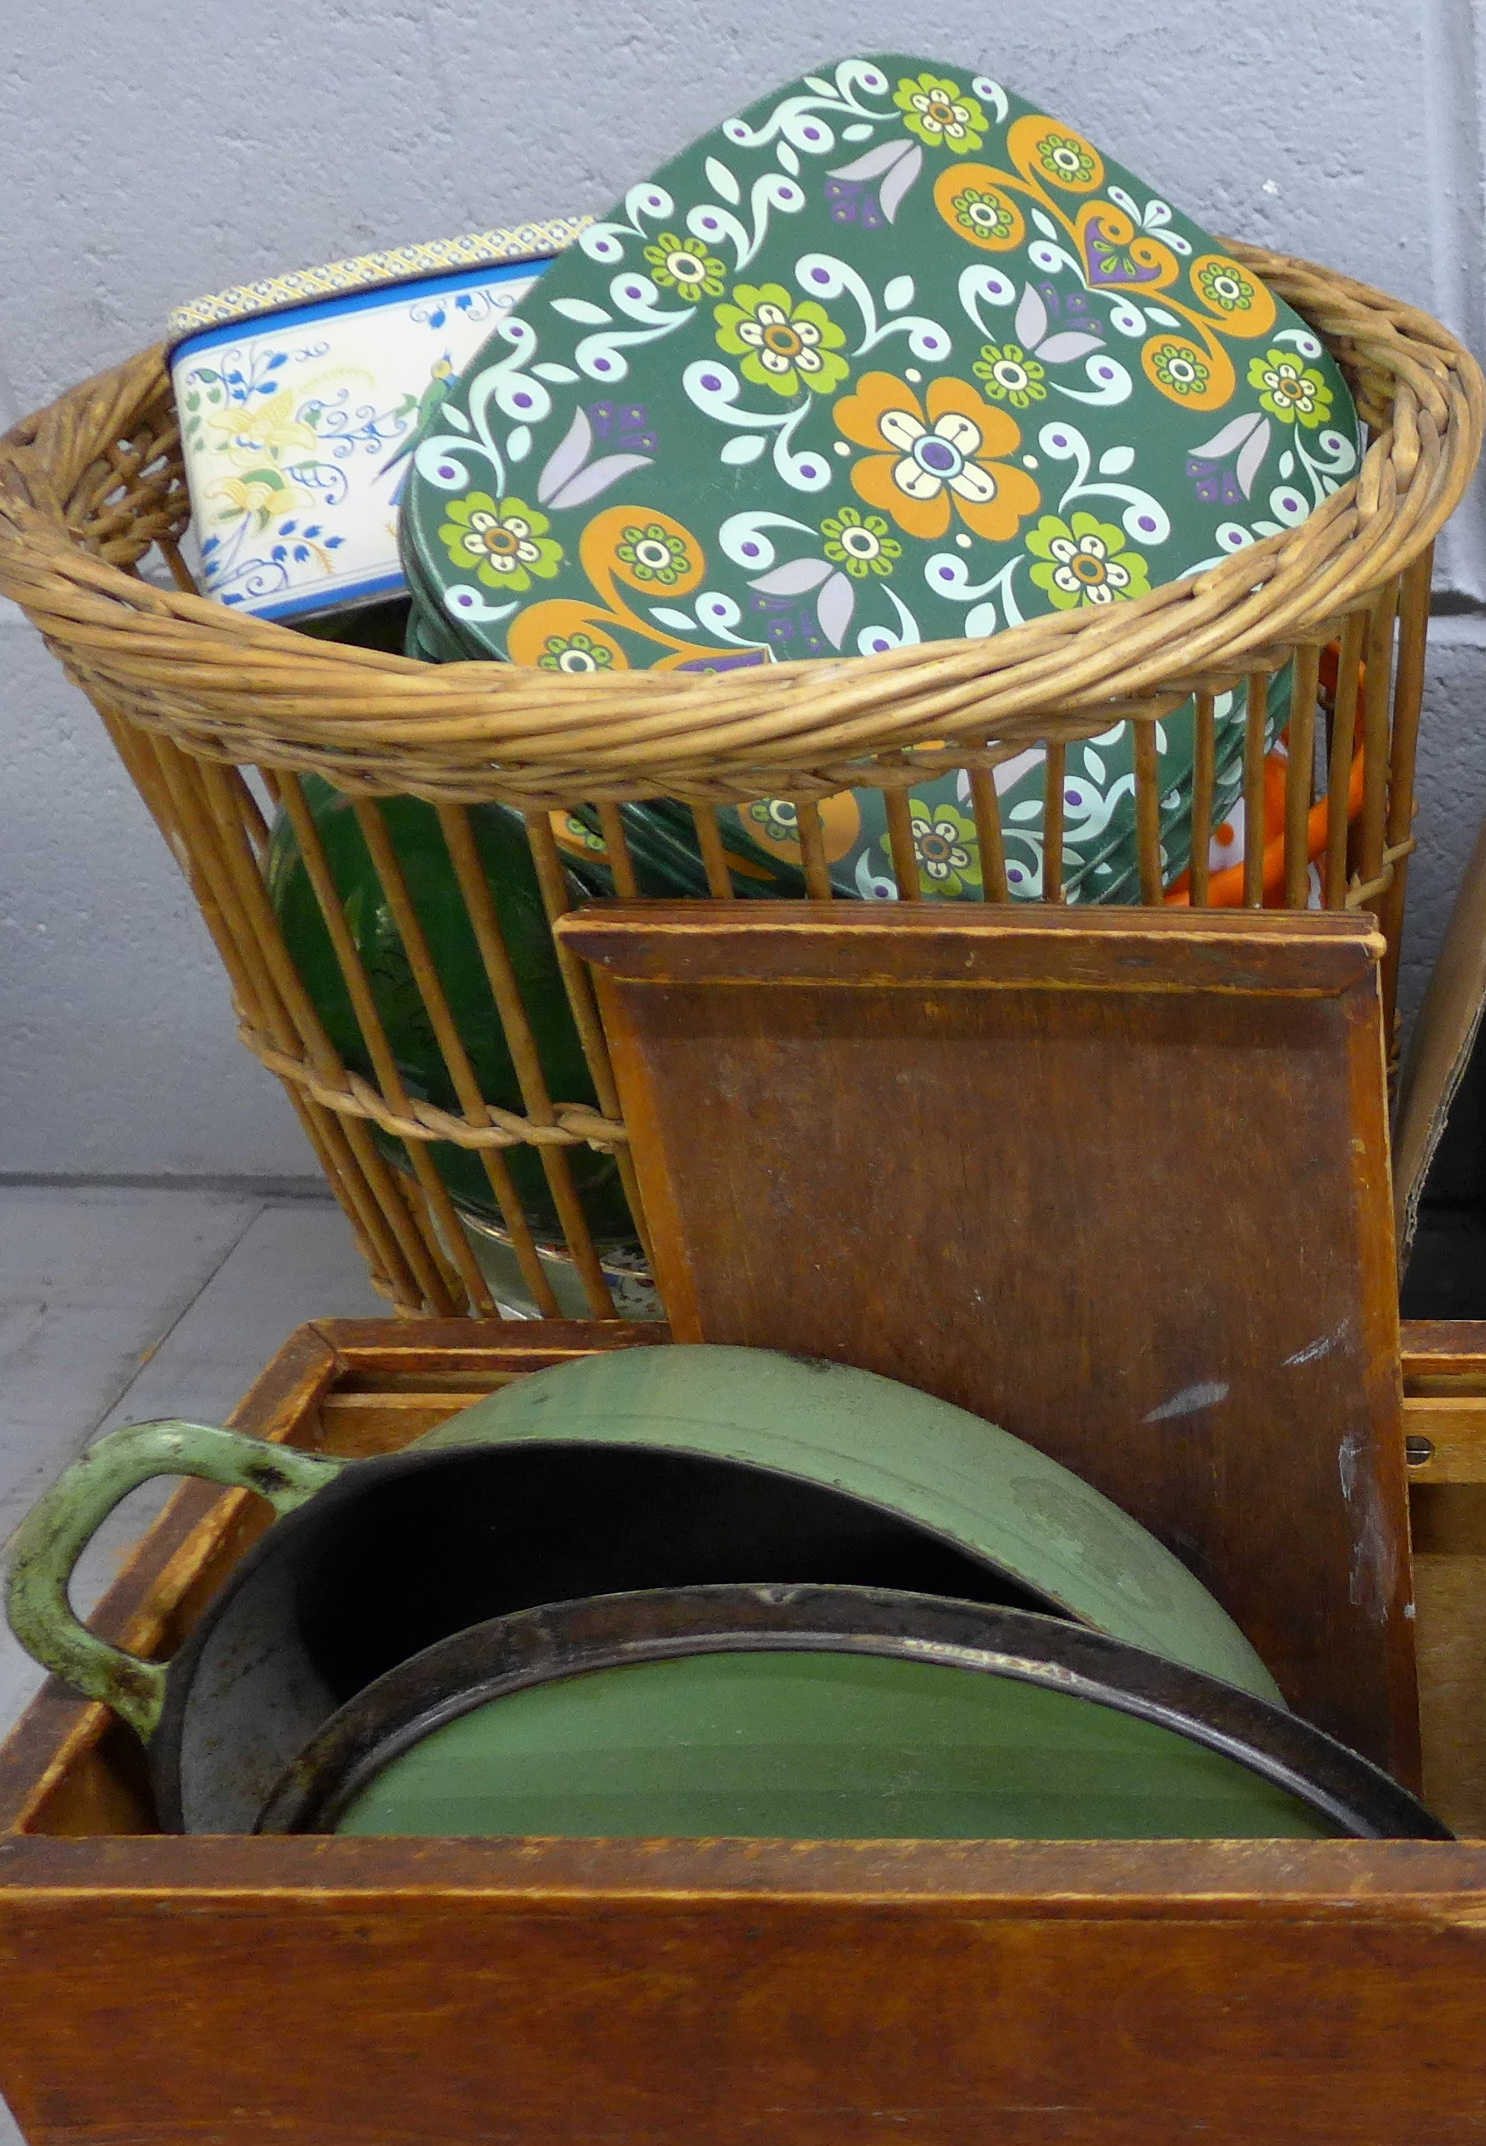 A pancheon, tins and other kitchenalia **PLEASE NOTE THIS LOT IS NOT ELIGIBLE FOR POSTING AND - Image 3 of 4